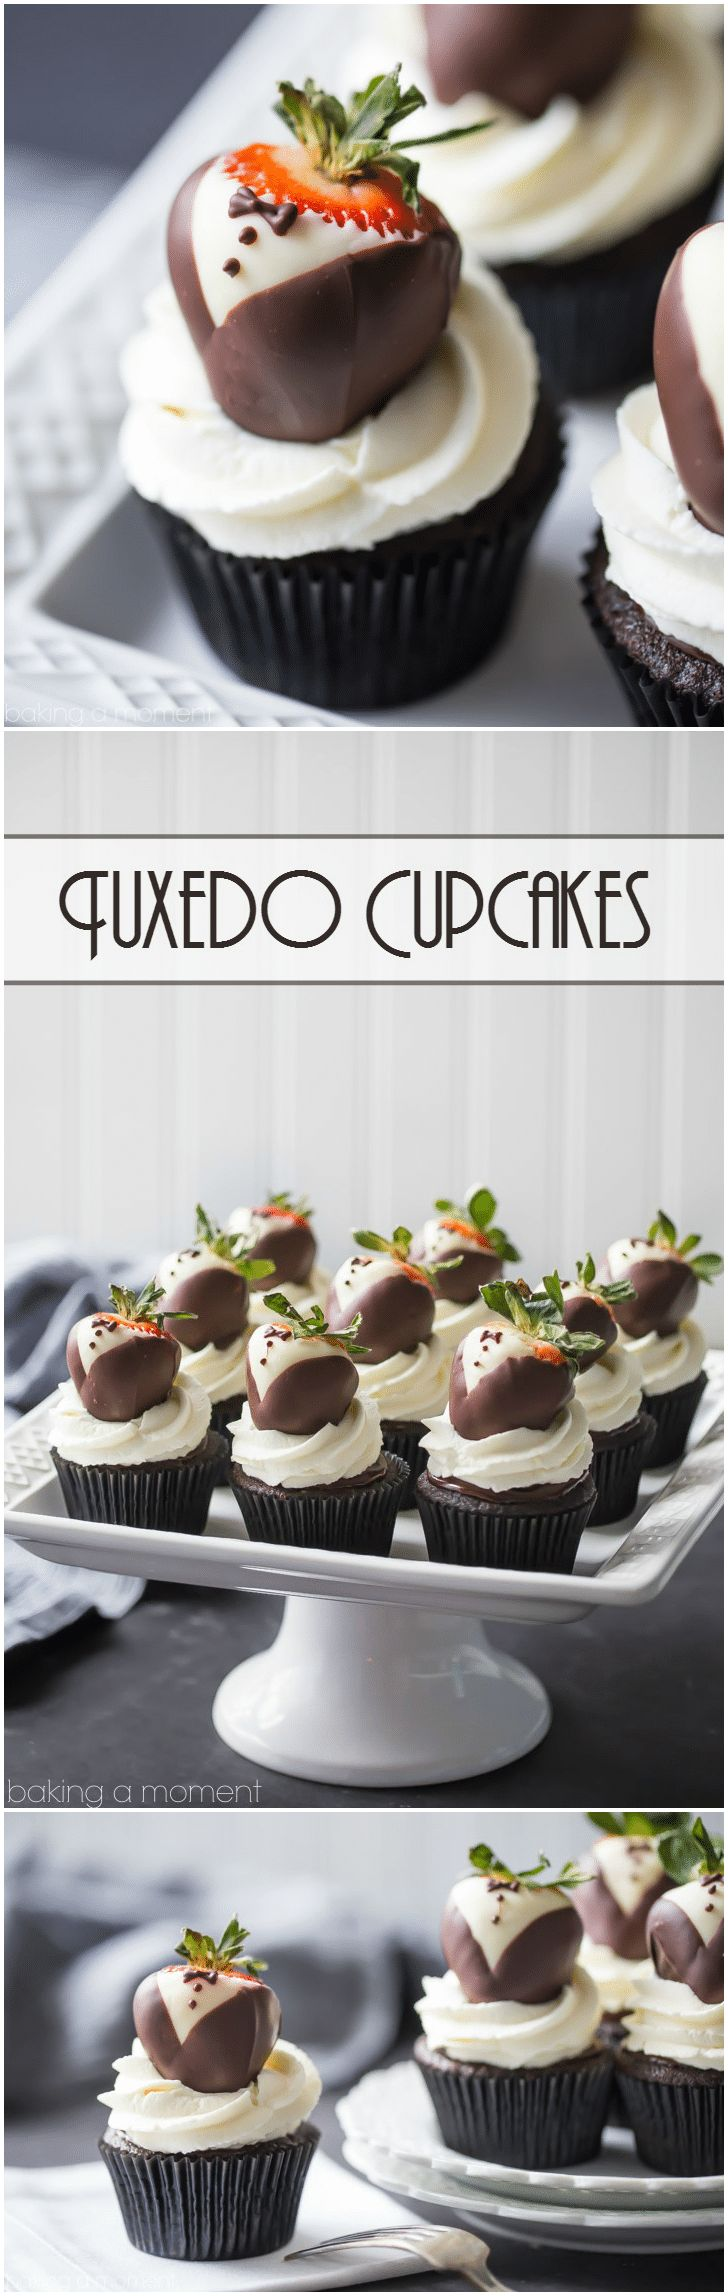 Tuxedo Cupcakes: moist, dark chocolate cake topped with rich ganache, fluffy whipped cream, and chocolate covered strawberries. These are so fun for a special occasion!